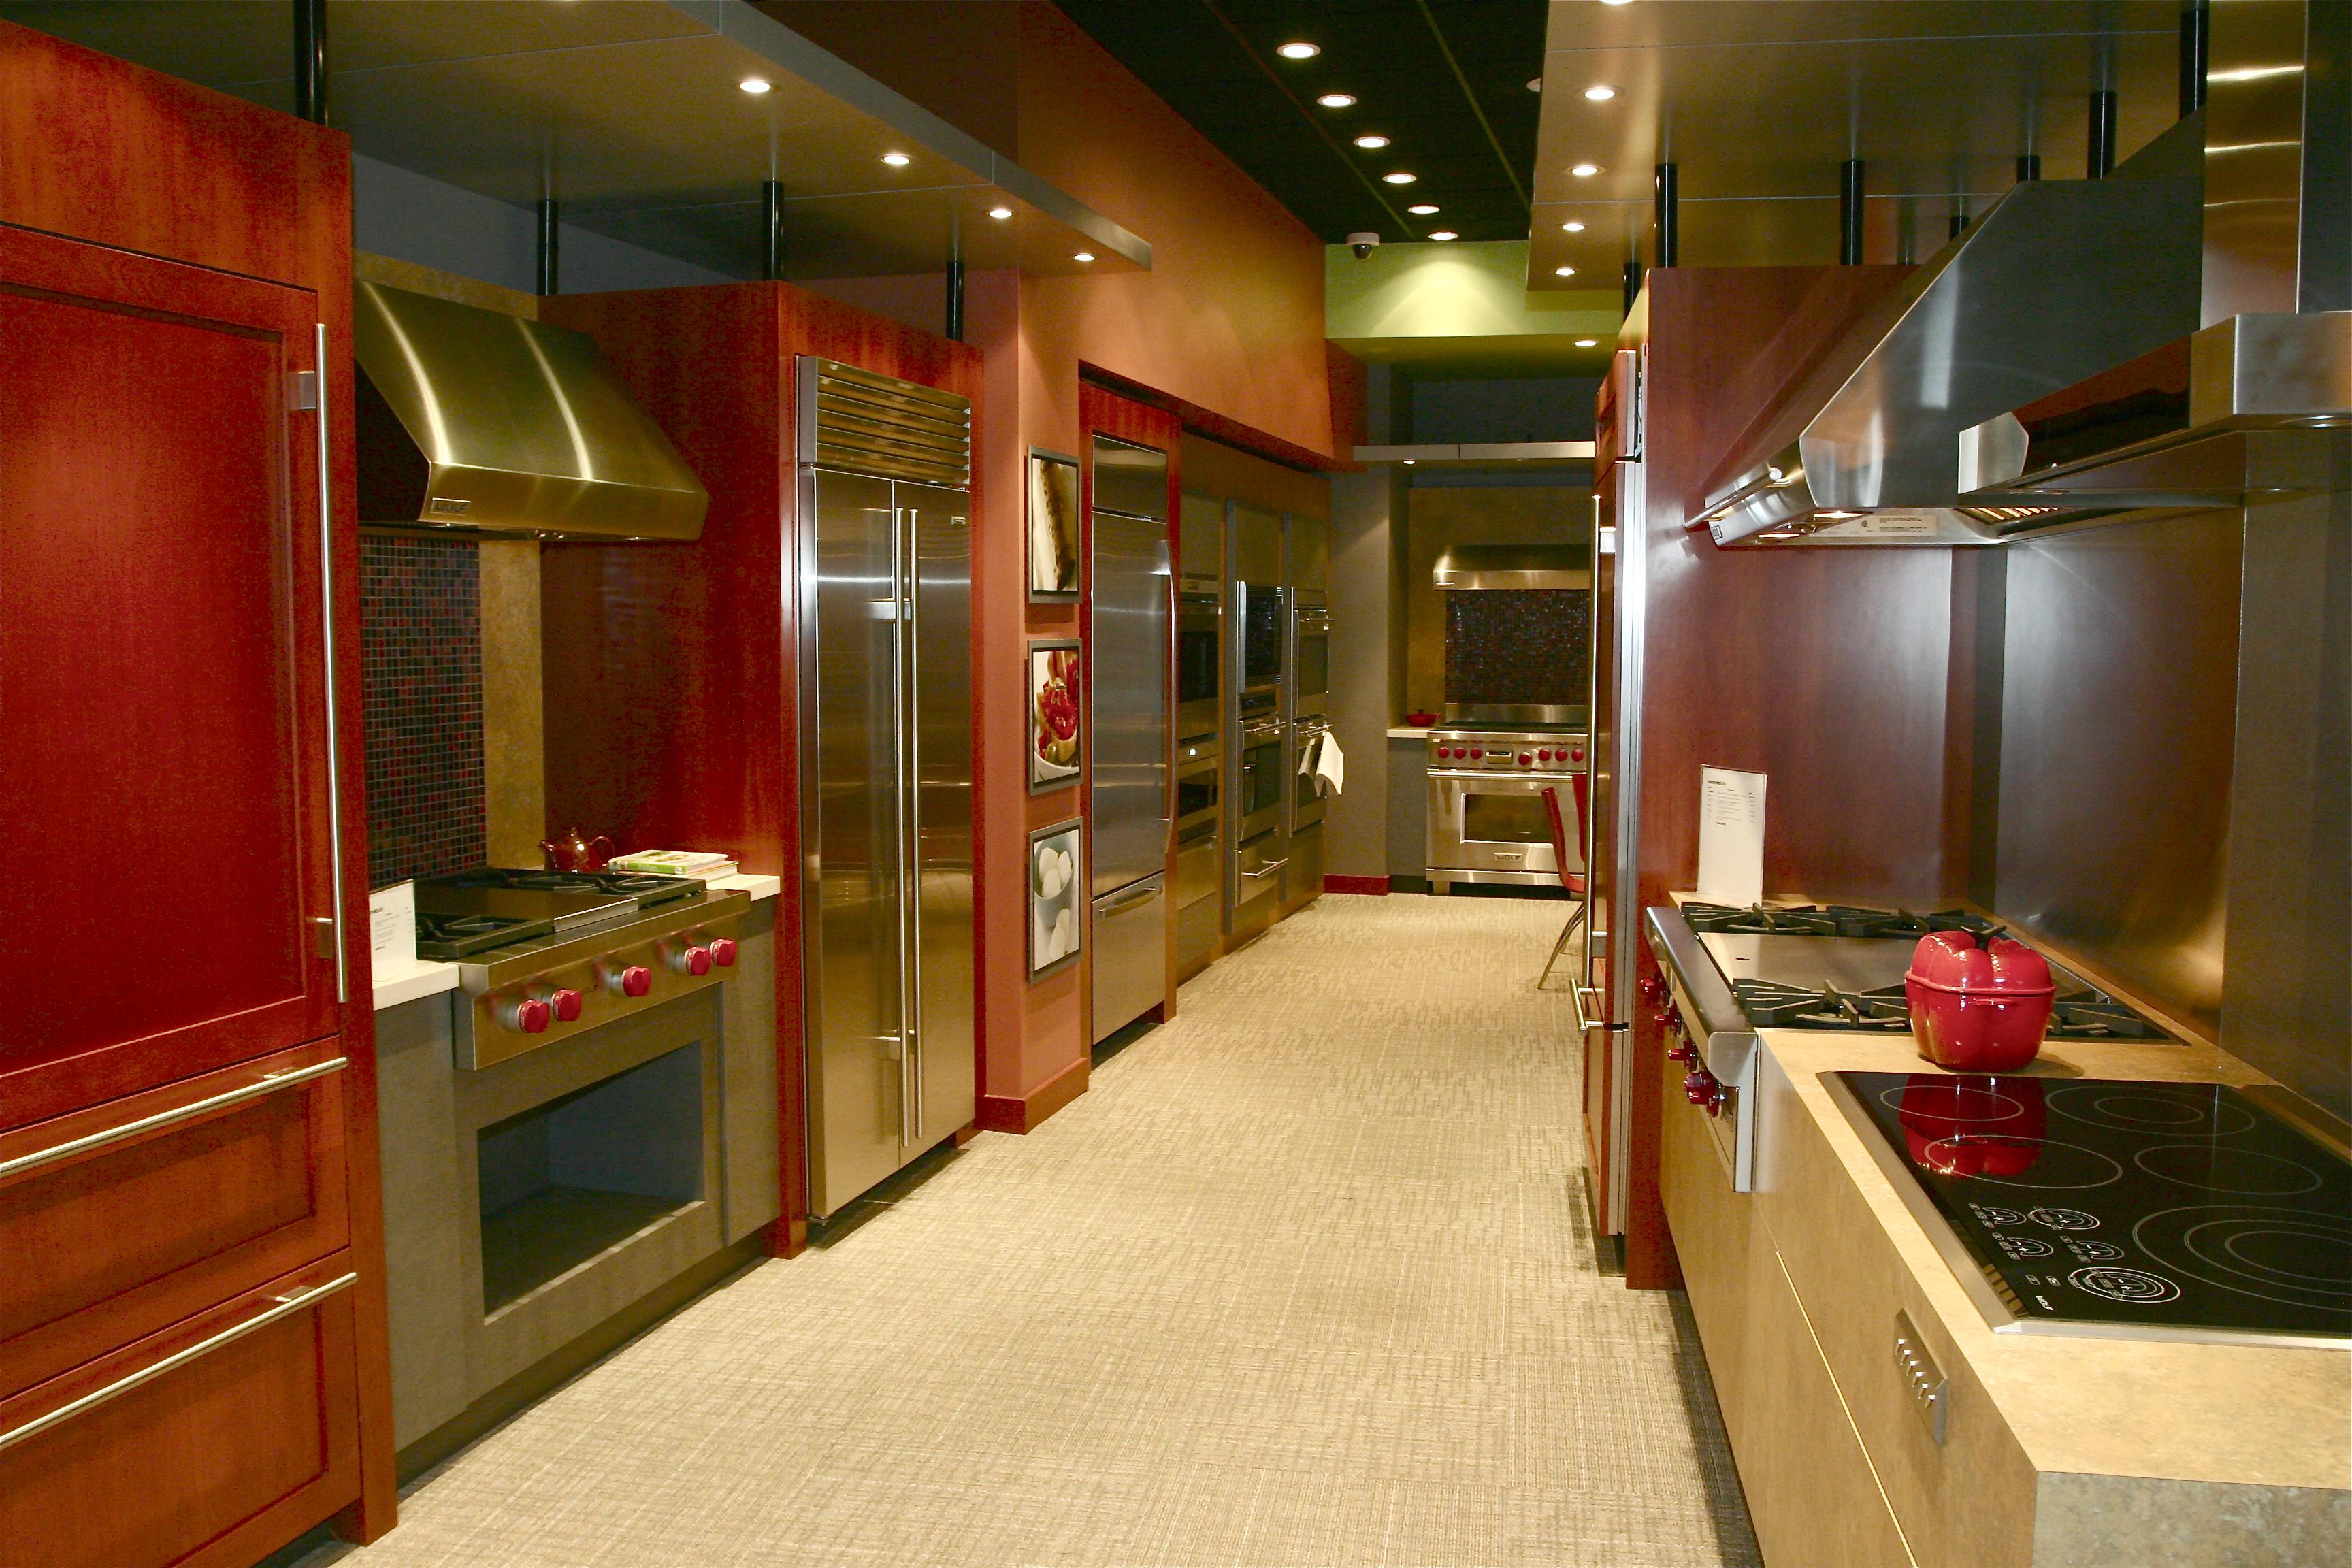 kitchen appliances kitchen appliance store